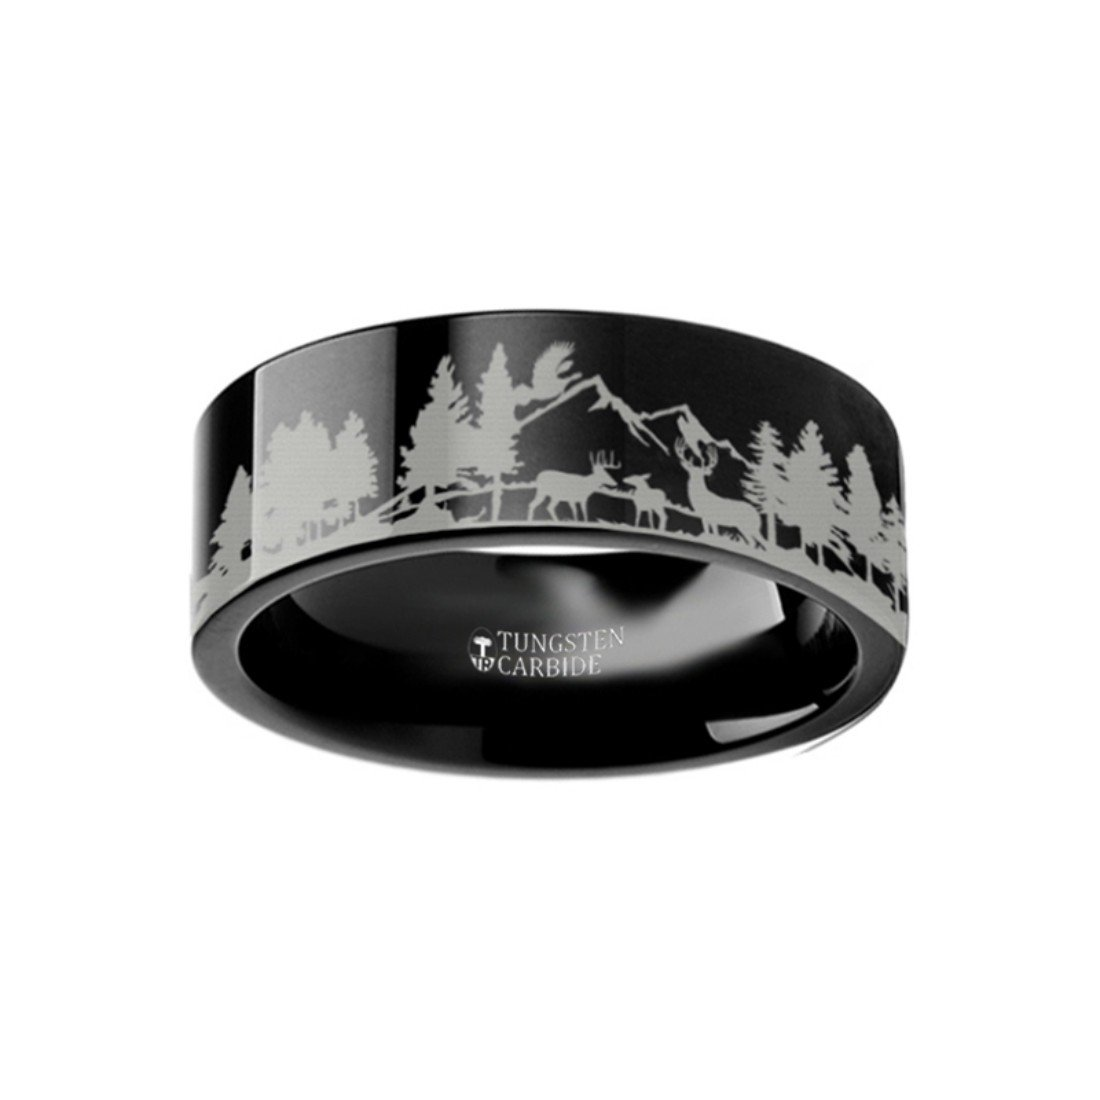 Amazon Thorsten Animal Nature Landscape Reindeer Deer Stag Mountain Range Ring Black Tungsten 6mm Wide Wedding Band From Roy Rose Jewelry Size 9: Wedding Rings Nature Scene At Reisefeber.org